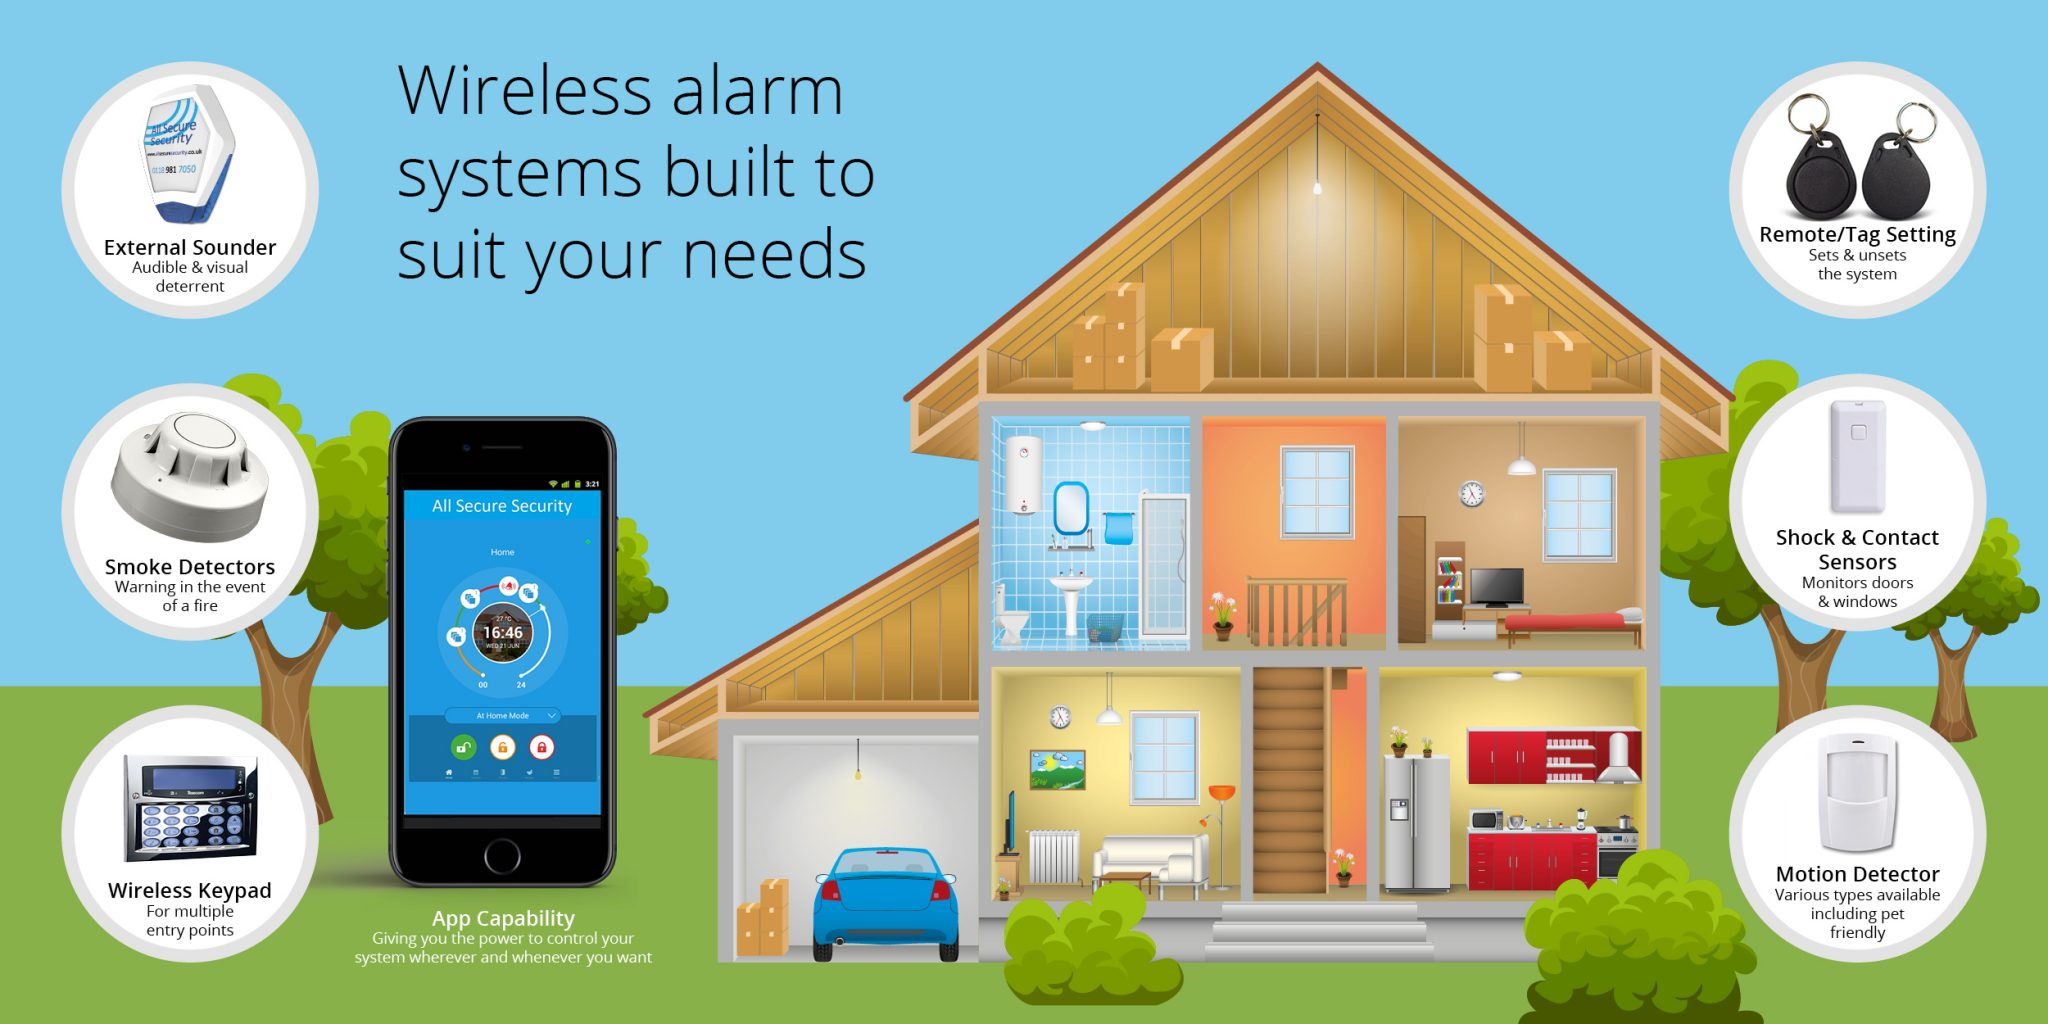 Wireless alarm systems built to suit your needs